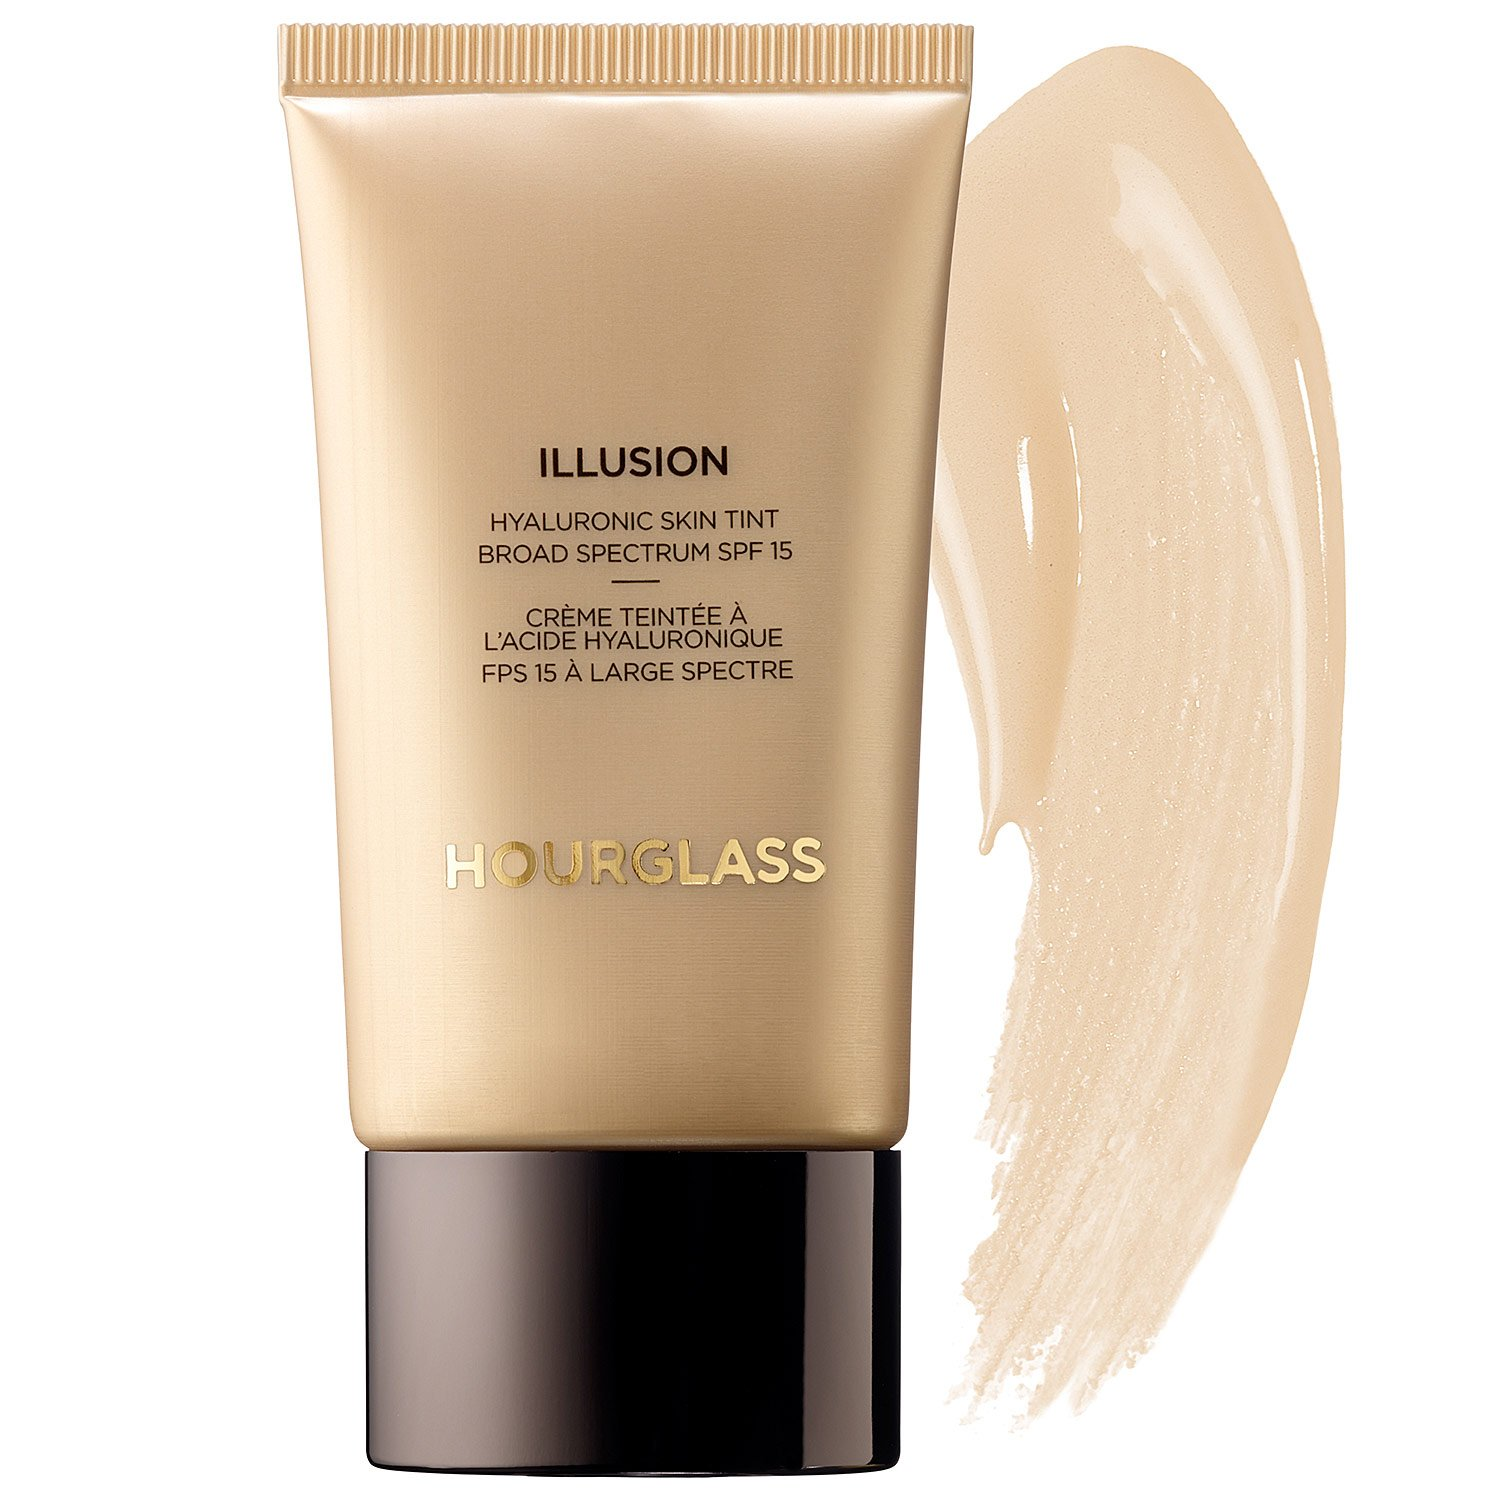 Hourglass Illusion Hyaluronic Skin Tint (Shell)